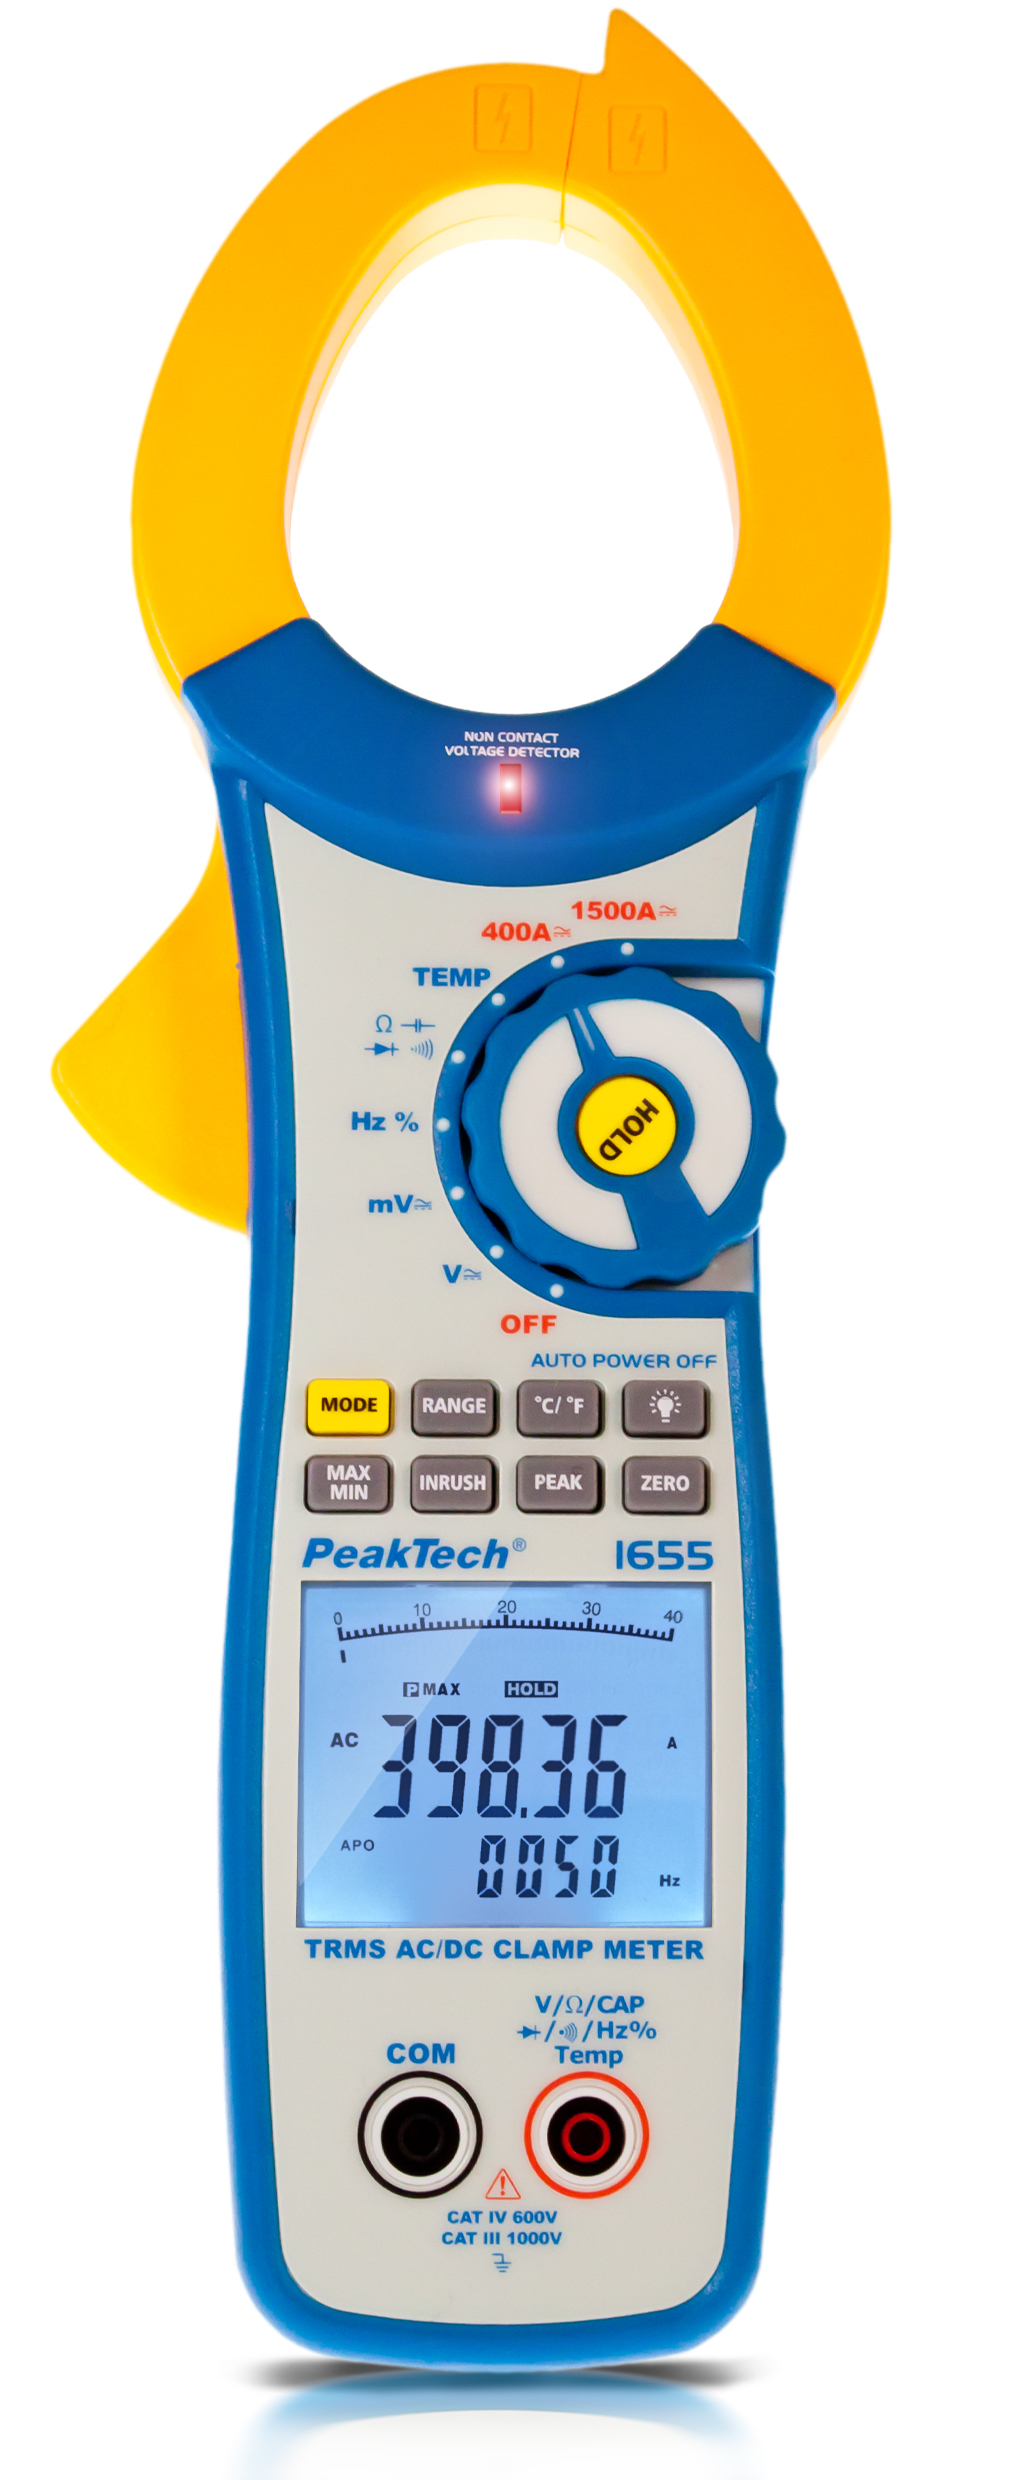 «PeakTech® P 1655» TrueRMS clamp meter 40,000 counts 1500 A AC/DC